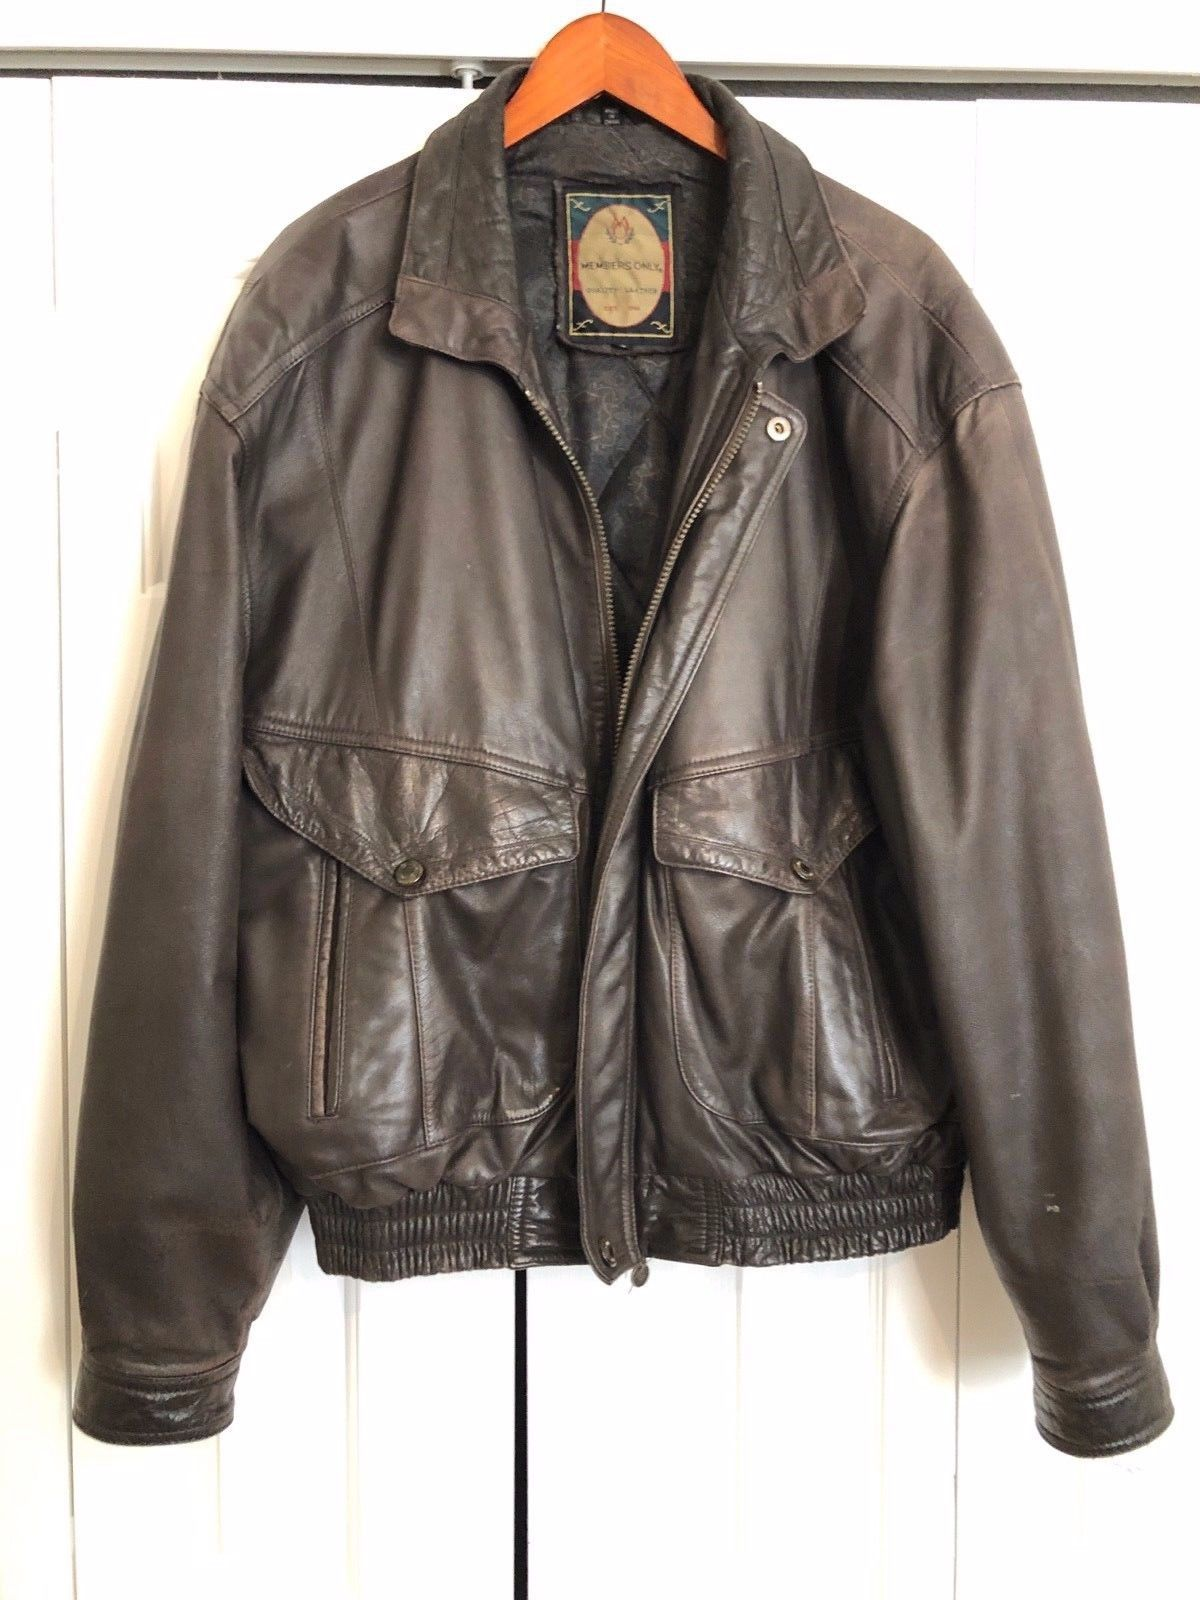 Pin by HNS OUTLET on Clothing Leather jacket, Leather